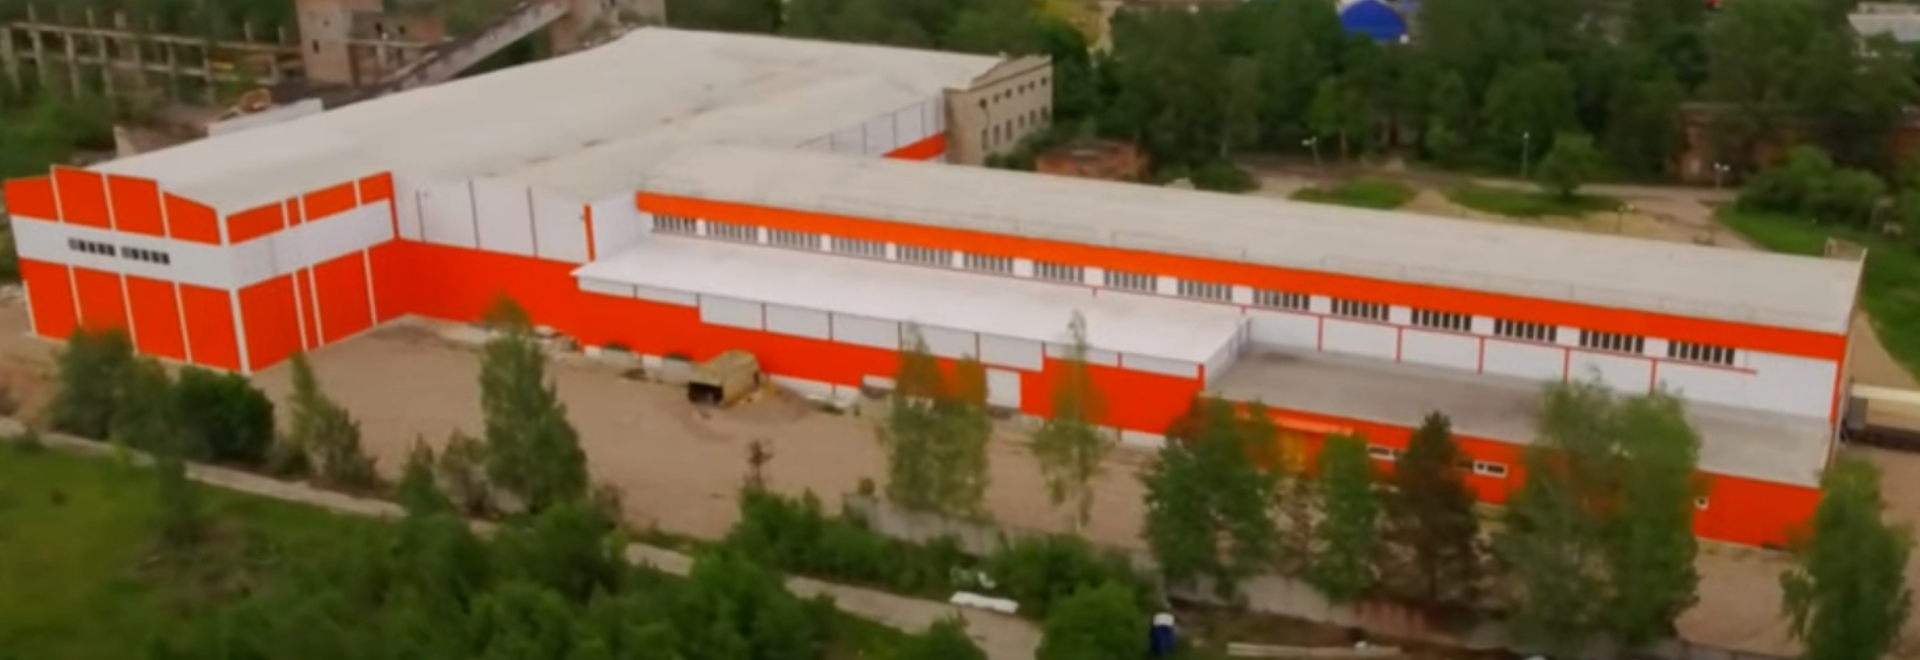 PIR Premier Insulated Panels for Warehouse in Moscow Region | CUSTOMER TESTIMONIAL